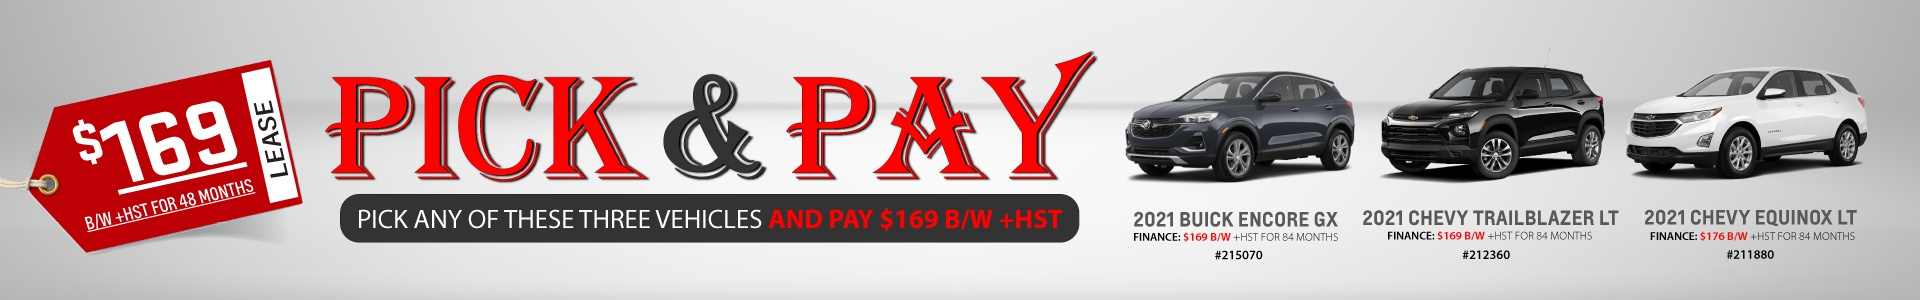 Pick & Pay 3 SUVs for $169 biweekly +HST